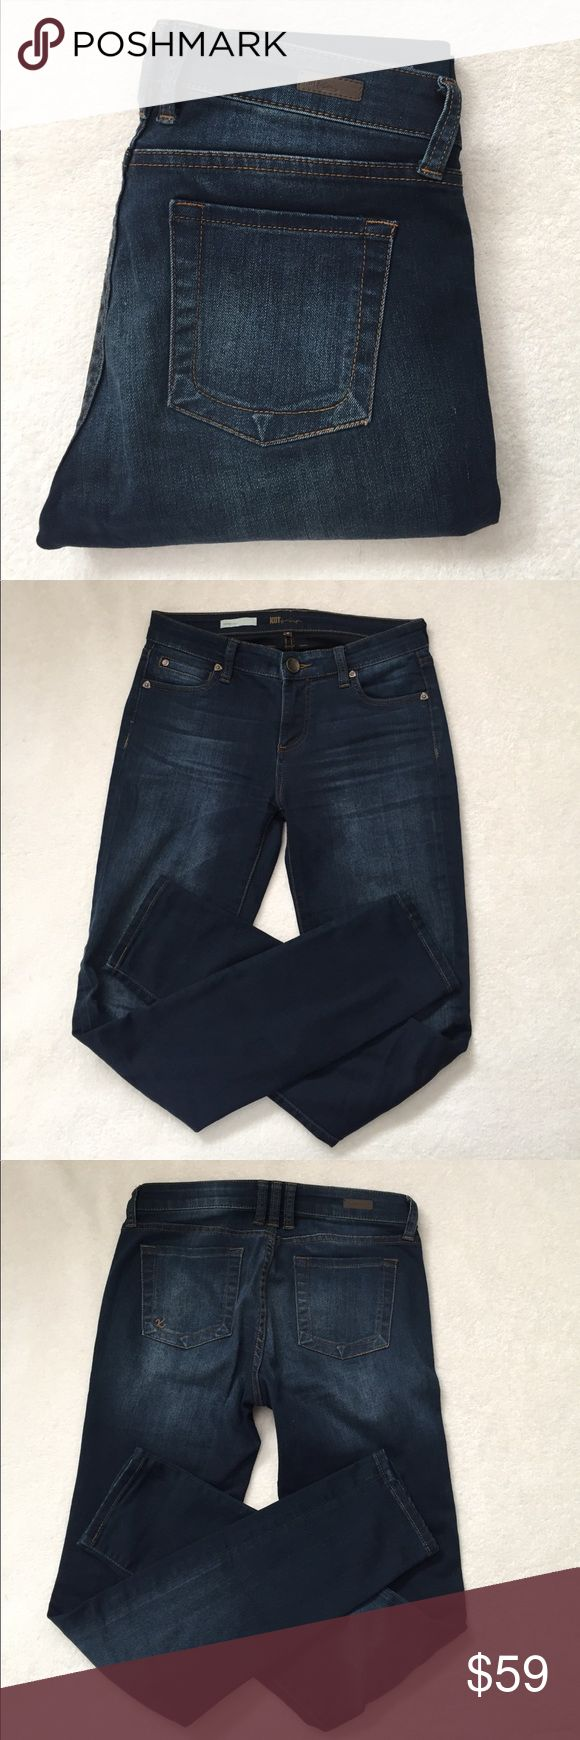 """KUT Jeans Cute KUT """"Diana"""" skinny jeans. Only worn a few times! Excellent condition! Inseam 31"""" waist across 15.5"""" Rise 8.5"""" Kut from the Kloth Jeans Skinny"""